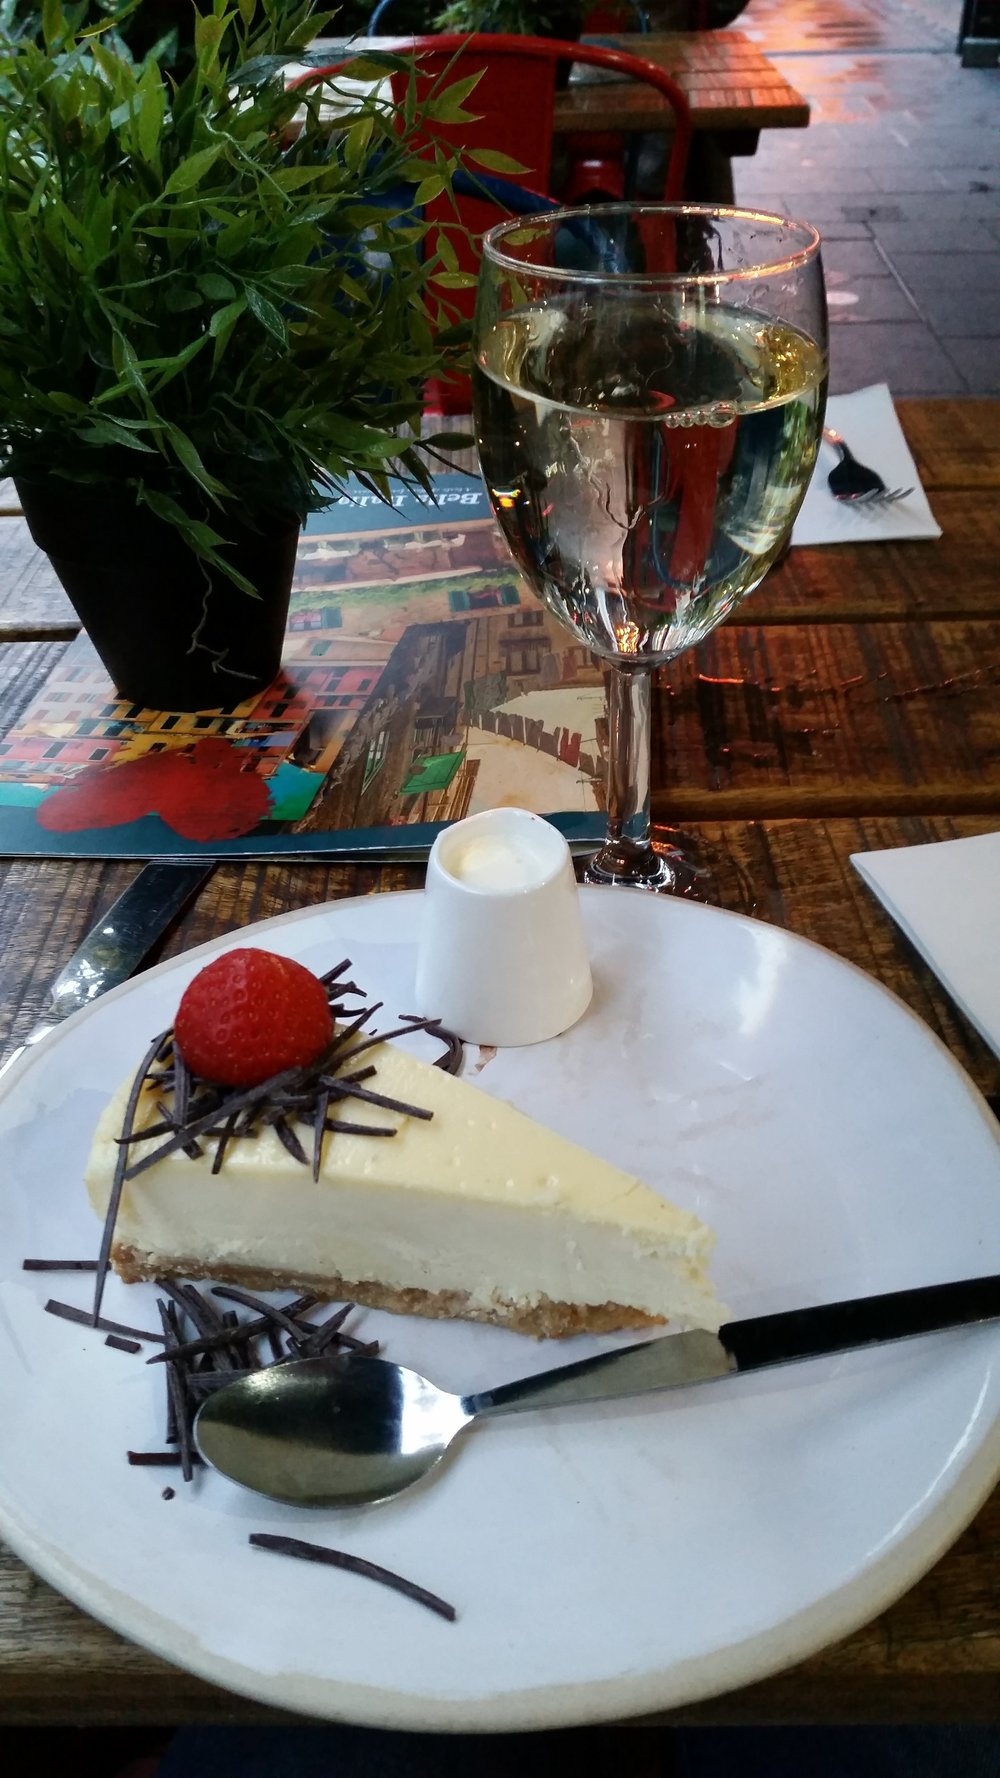 Real talk: this cheesecake I had at an Italian restaurant in London (Bella Italia, I think it's a local chain) was some of the best I've had. Look it up.